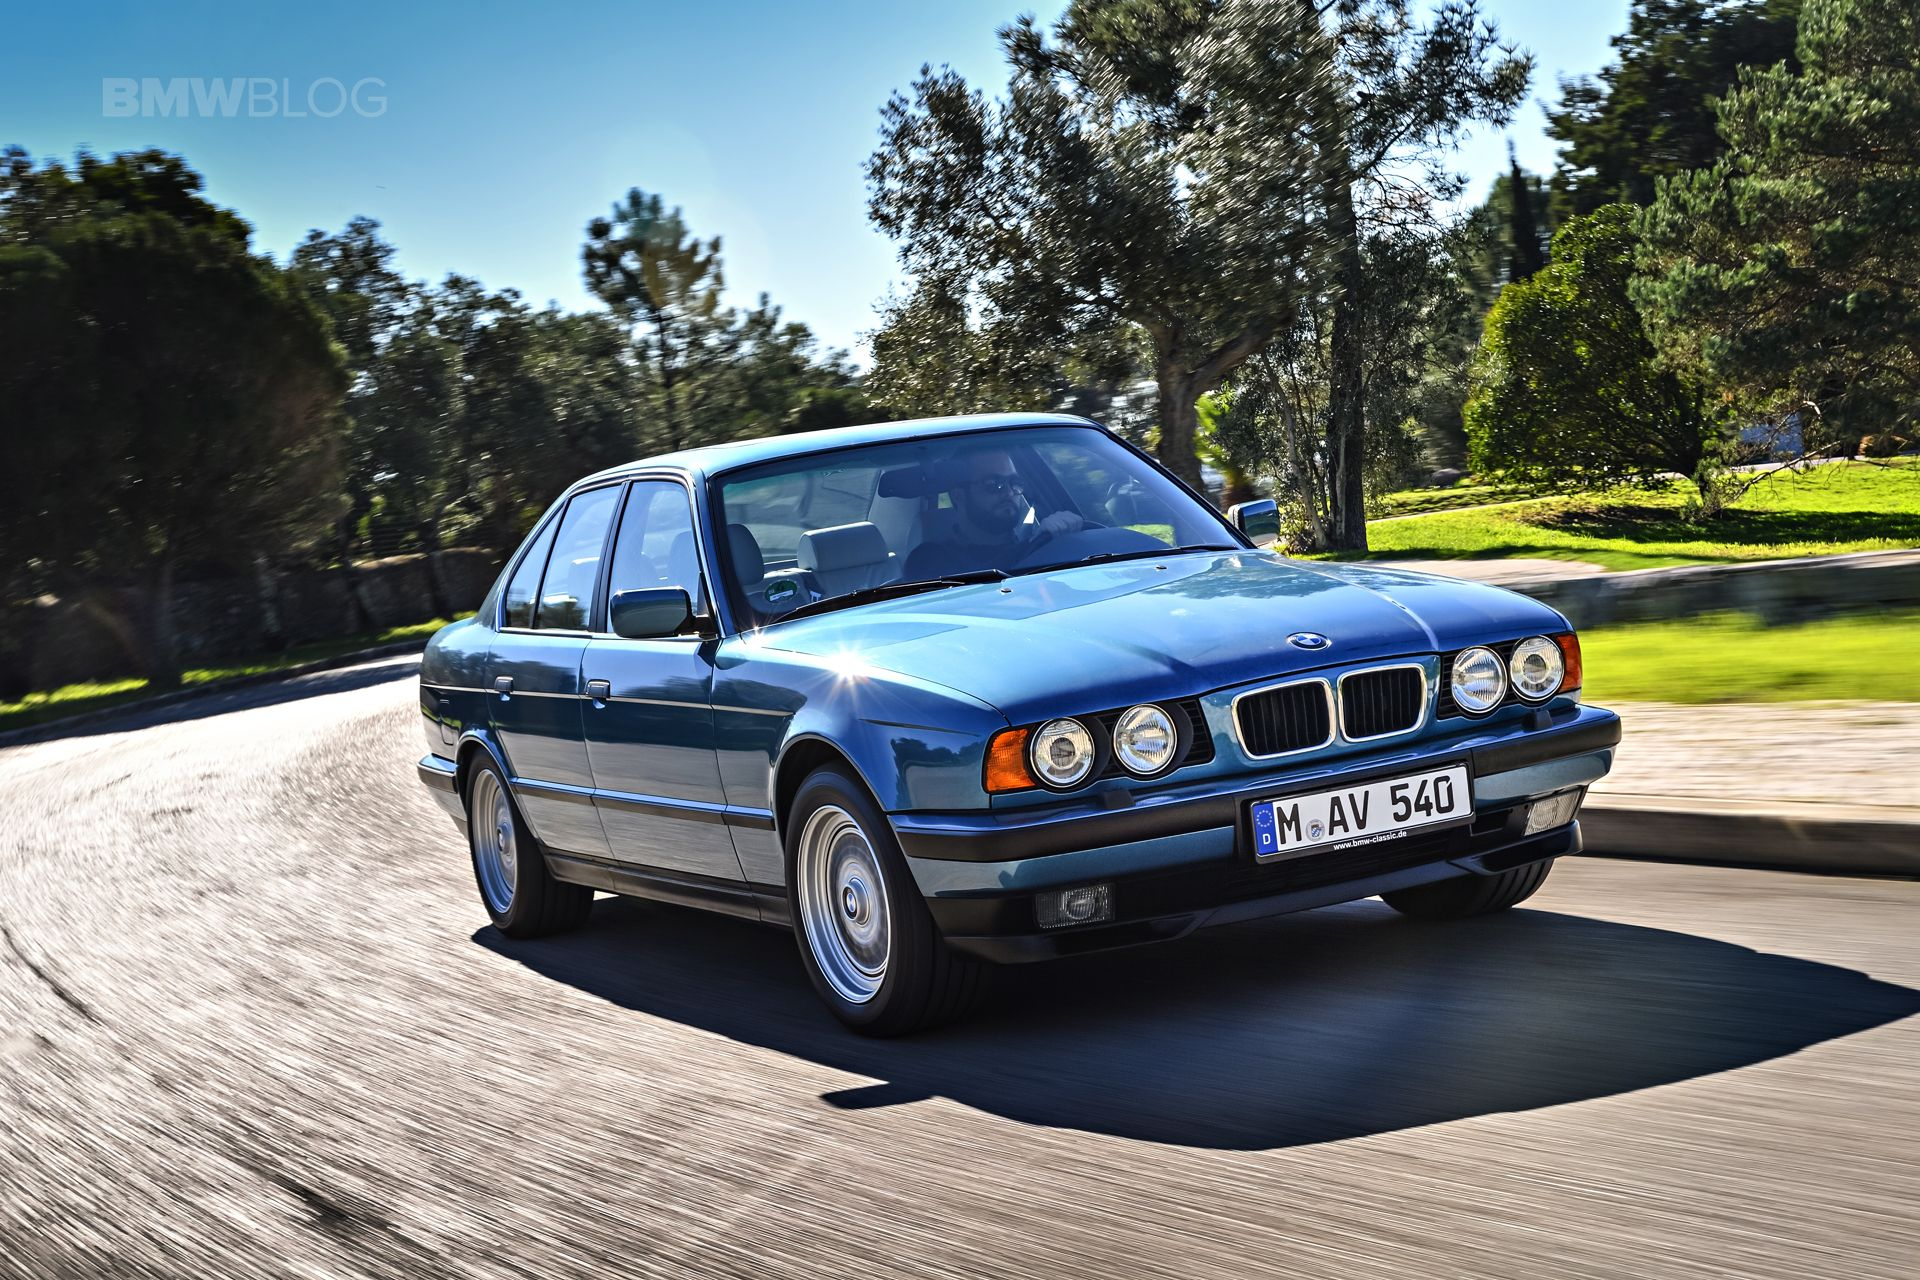 Beautiful photoshoot with the bmw e34 5 series http www bmwblog